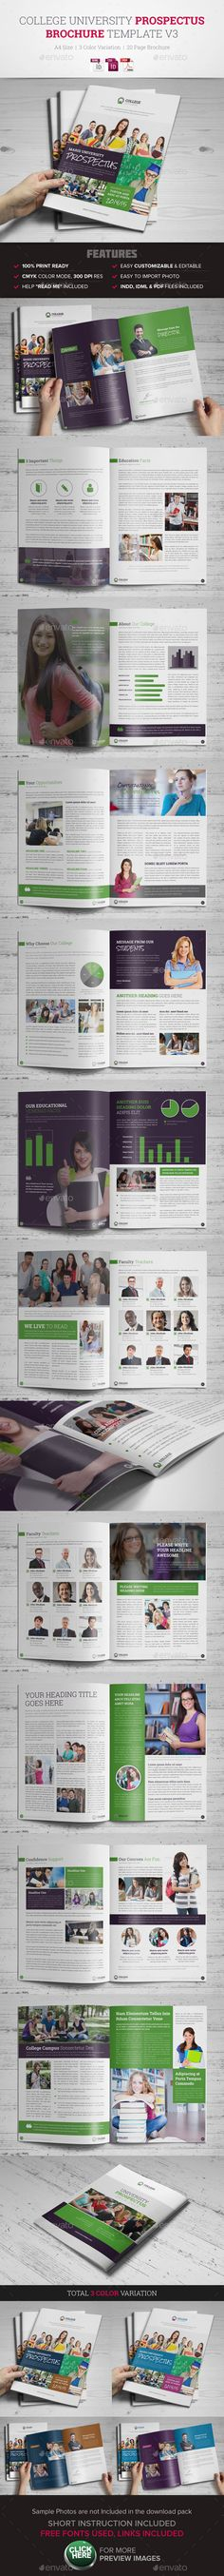 college brochure design ideas - redesign a college university brochure as the srp guide